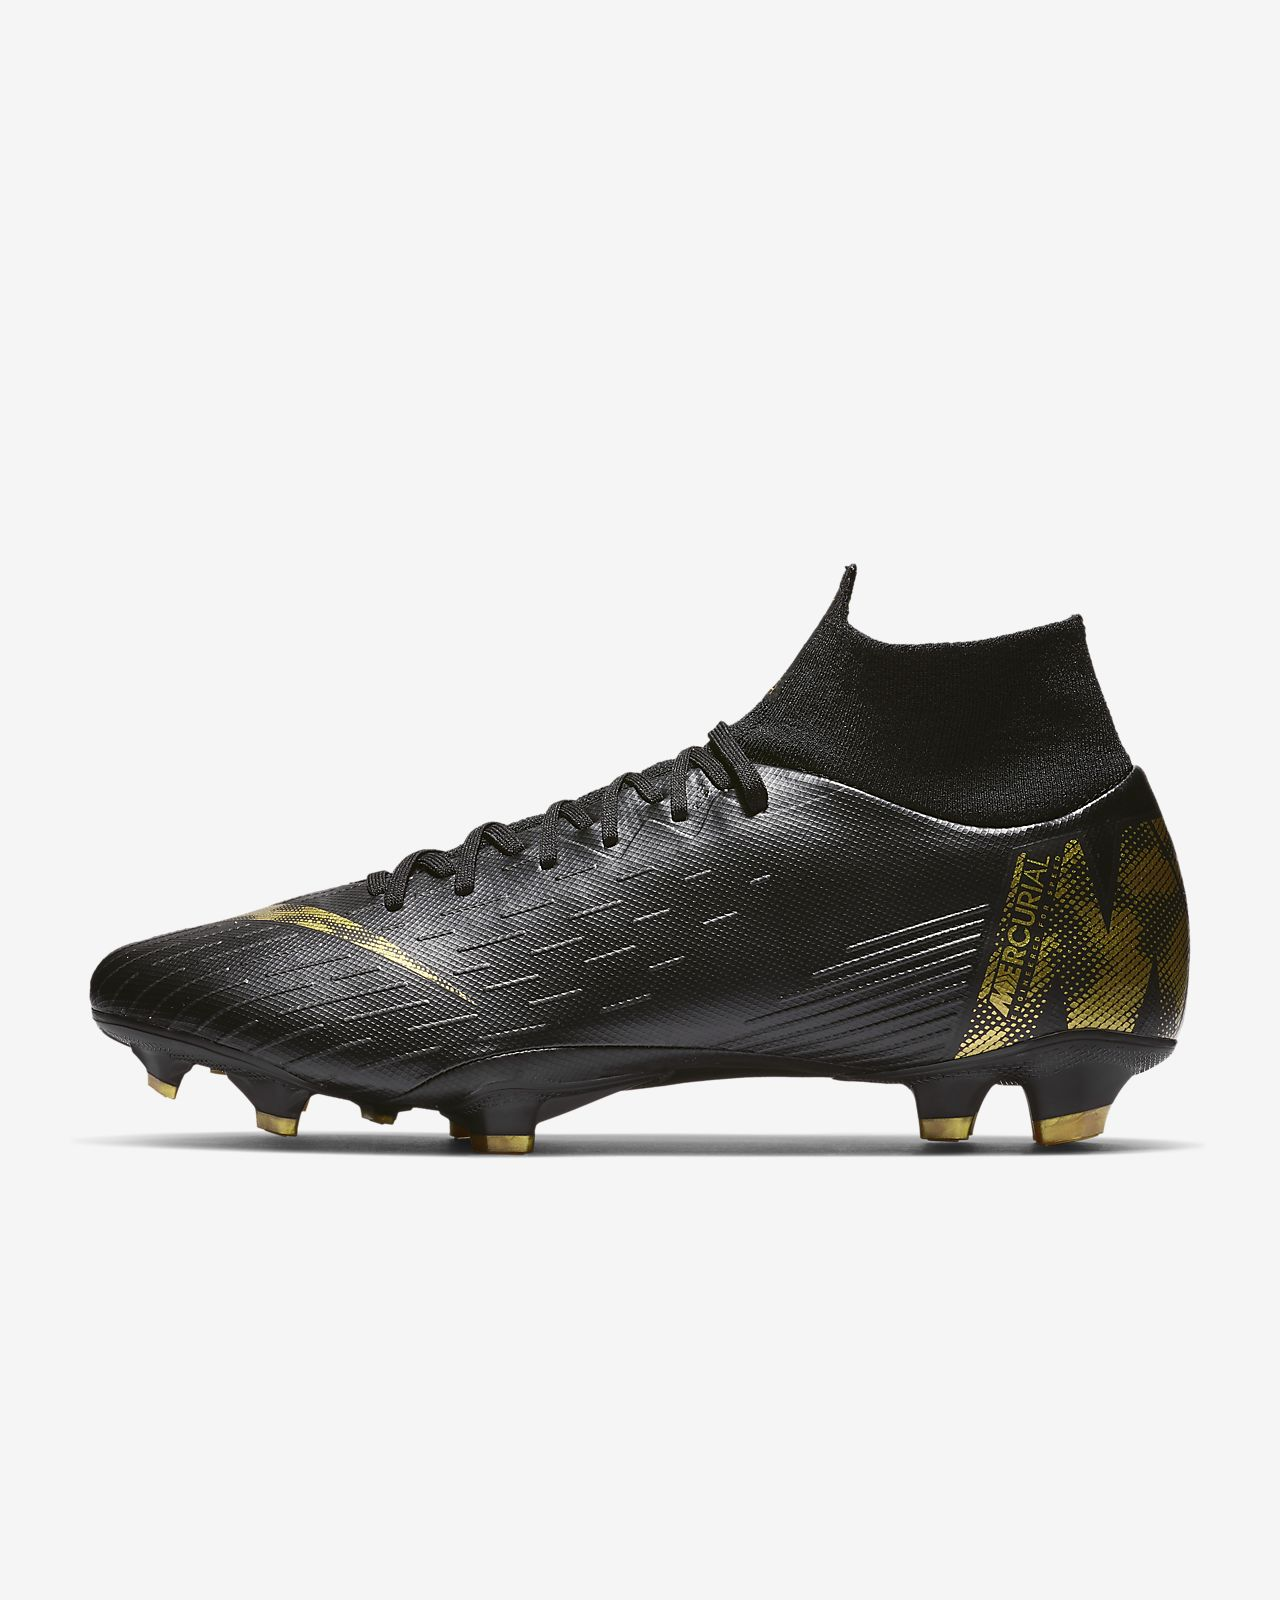 Nike Superfly 6 Pro FG Firm-Ground Football Boot